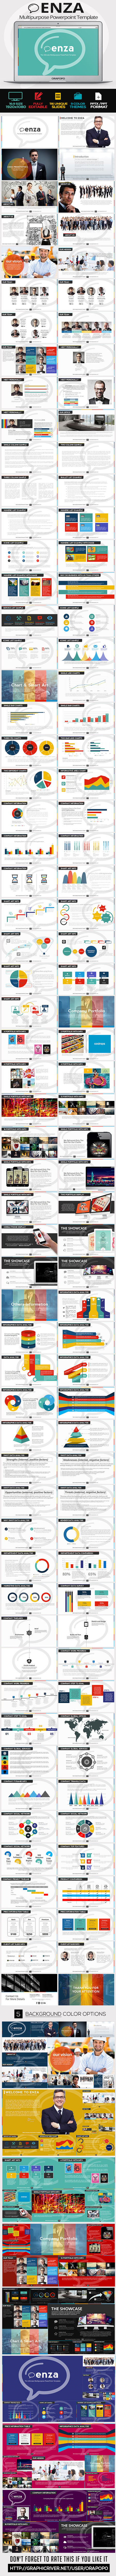 Enza Multipurpose Powerpoint Template - Business PowerPoint Templates